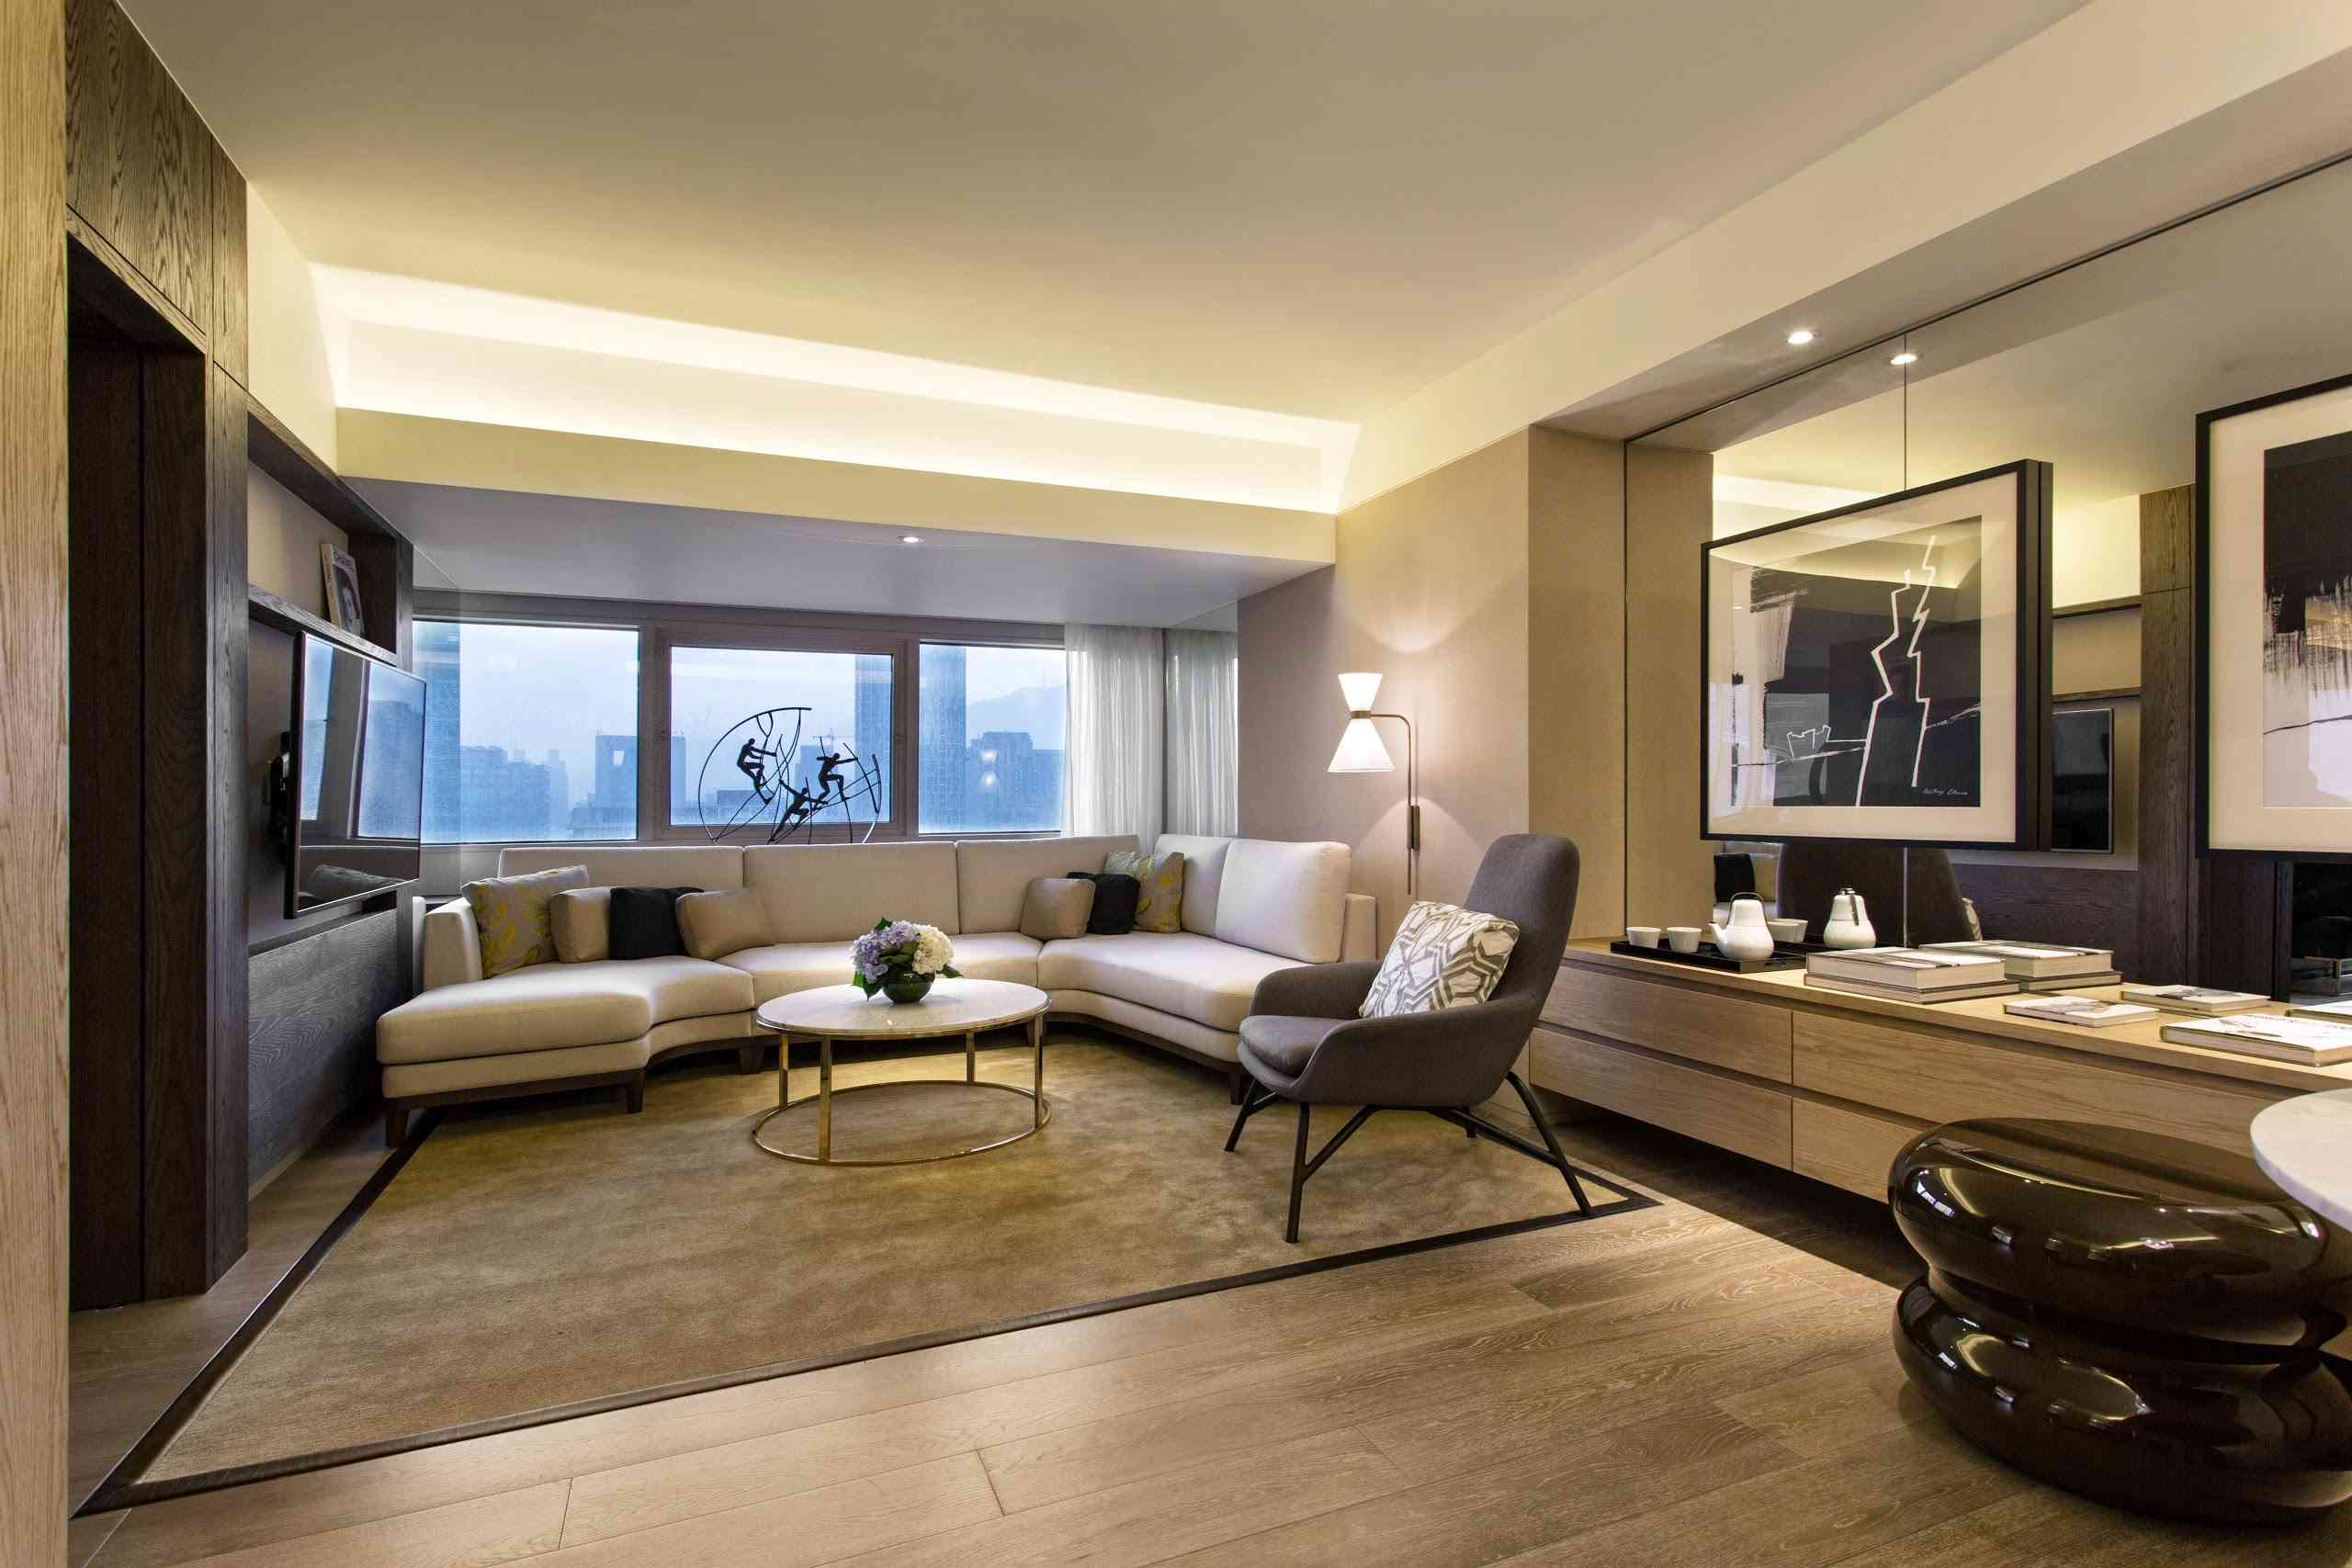 The living room of a Grand Executive Suite at the Grand Hyatt Taipei